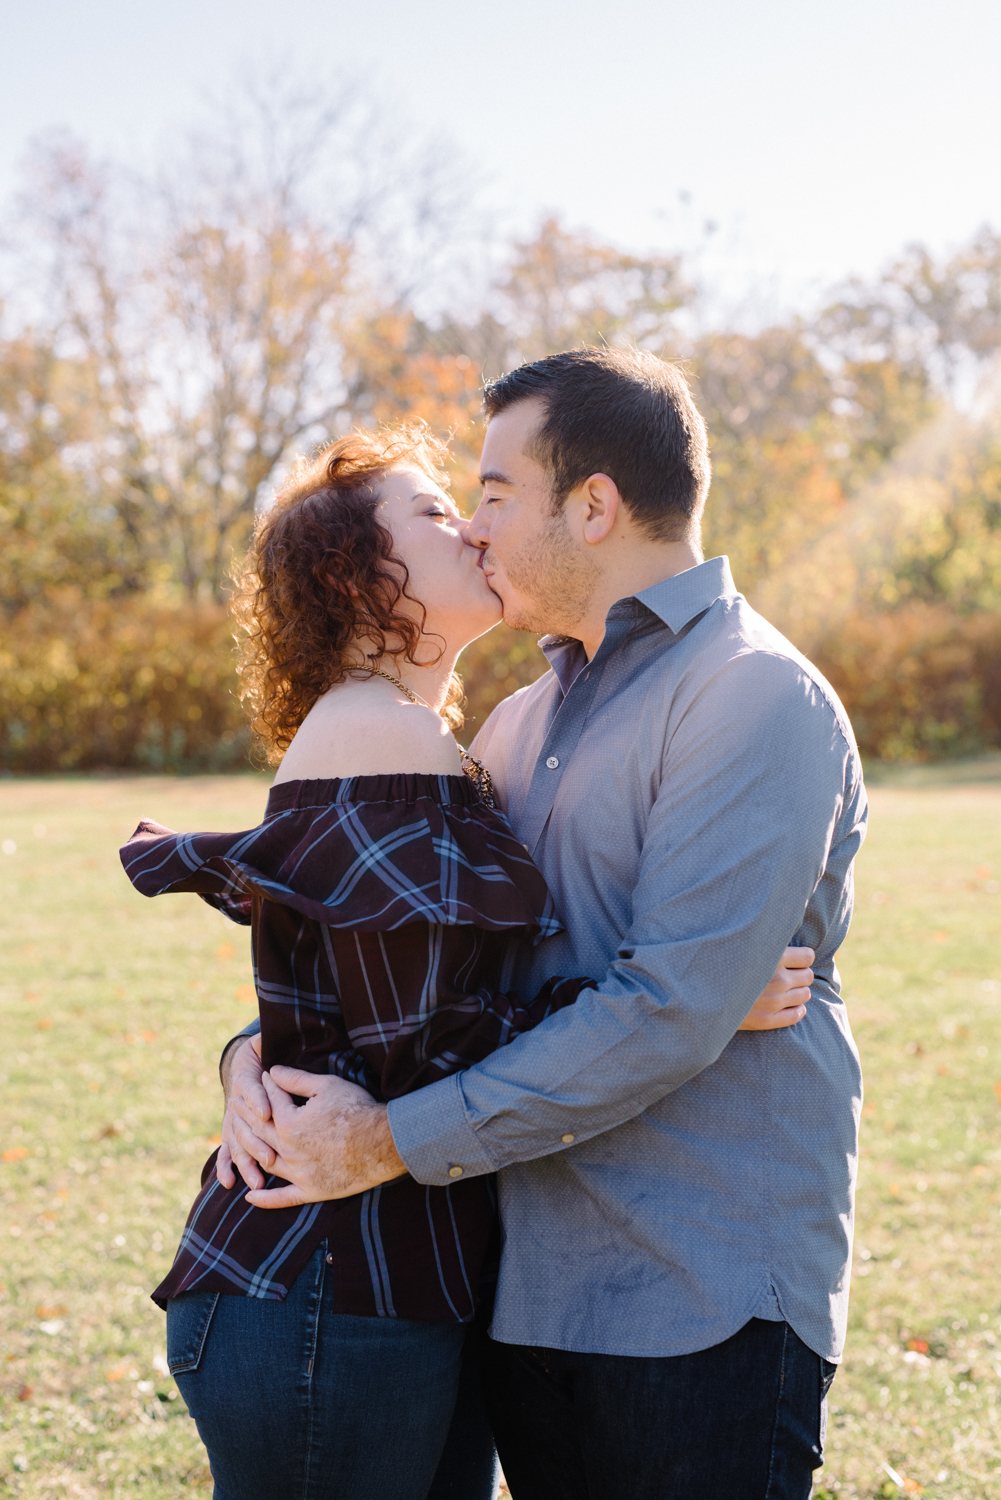 Melissa+Kenny- Watsessing Park Fall Engagement Session- Bloomfield New Jersey- Olivia Christina Photo-34.JPG